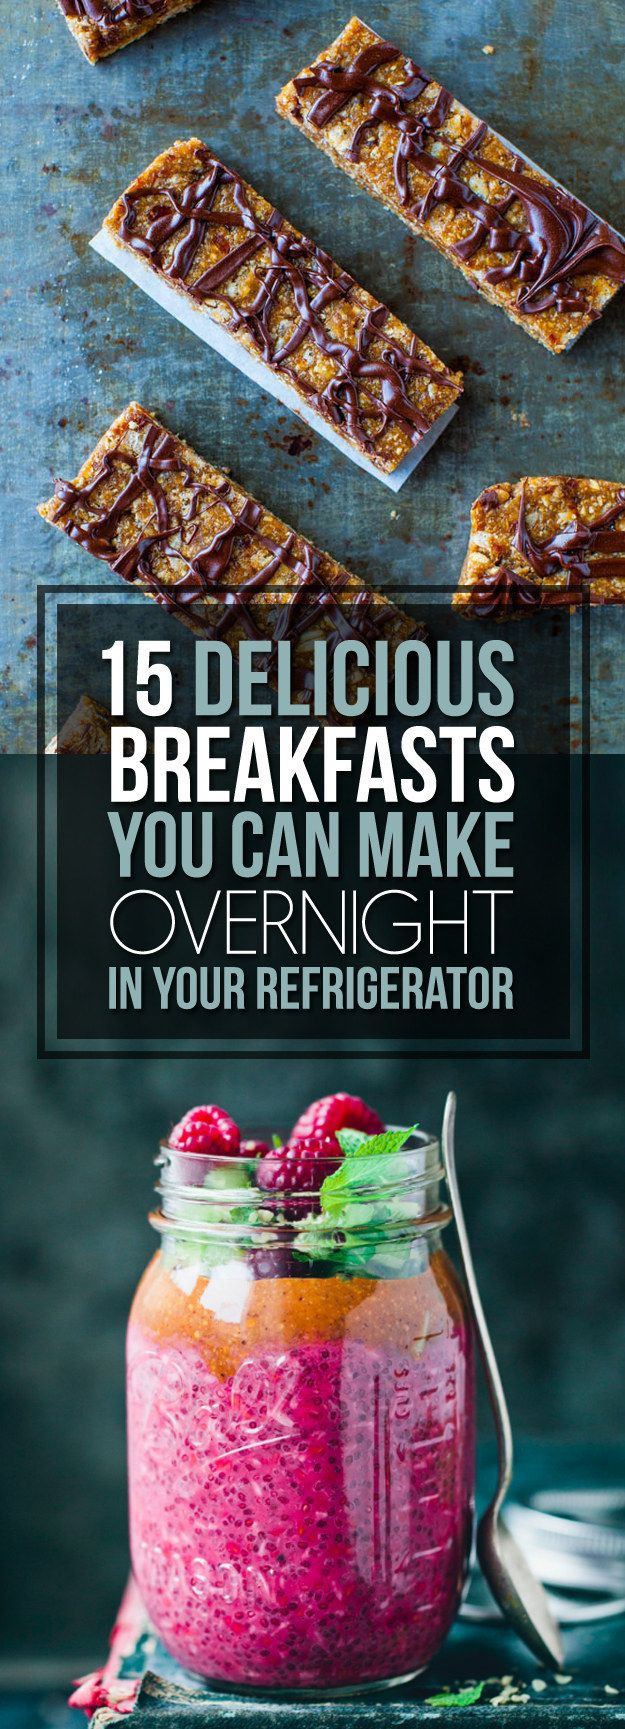 15 Insanely Delicious Overnight Breakfasts That Are Made While You Sleep | healthy recipe ideas @xhealthyrecipex |